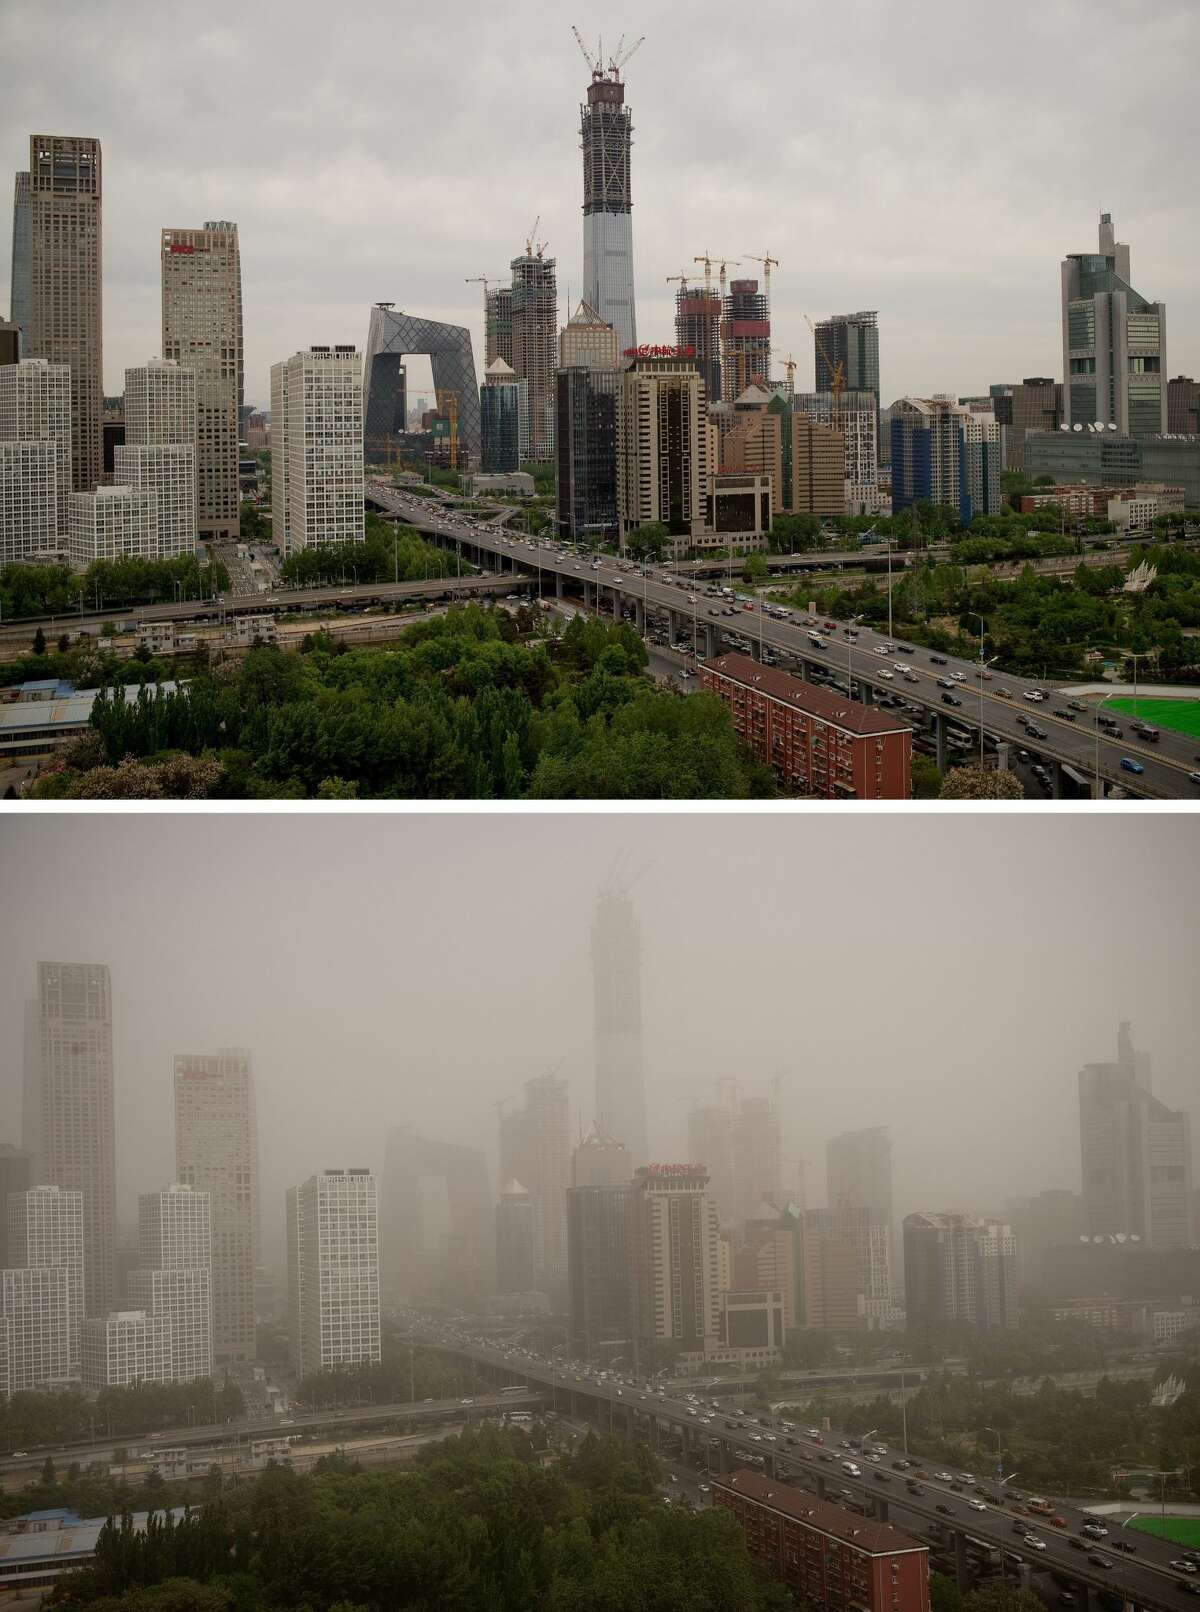 (COMBO) This combo shows an image (top) of Beijing's central business district on April 25, 2017 and the same view (bottom) on May 4, 2017 after the Chinese capital was hit by a dust storm. A major dust storm engulfed northern China and Beijing on May 4, prompting authorities to cancel dozens of flights and urge children and the elderly to stay indoors. / AFP PHOTO / Nicolas ASFOURI (Photo credit should read NICOLAS ASFOURI/AFP/Getty Images)